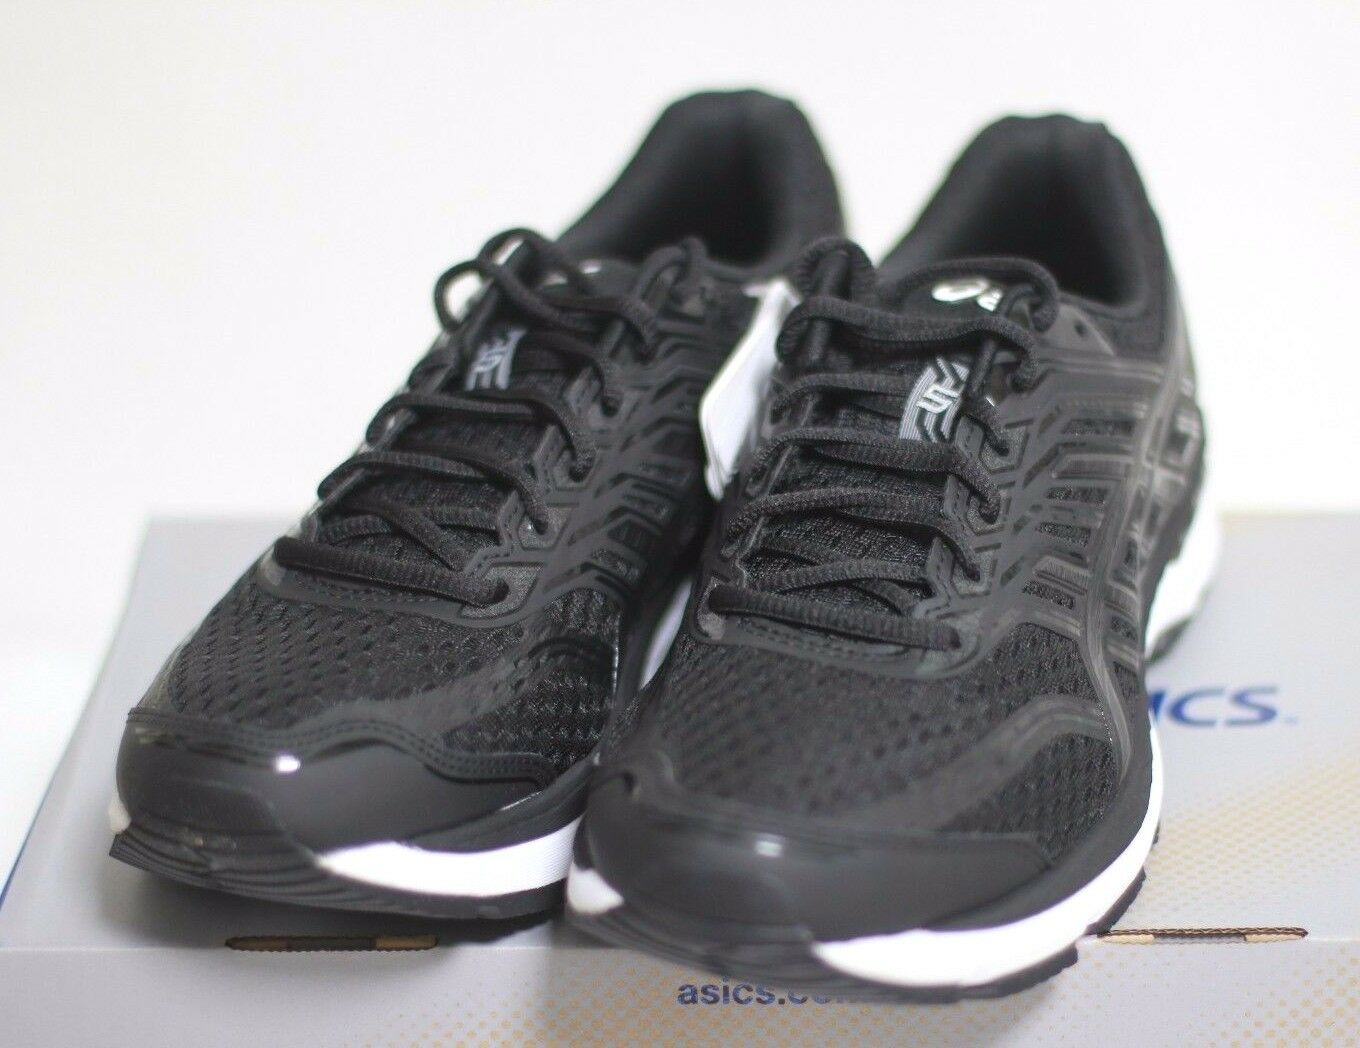 ASICS 2017 New Men's GT-2000 5 Road Running Shoes Black Color - Authentic